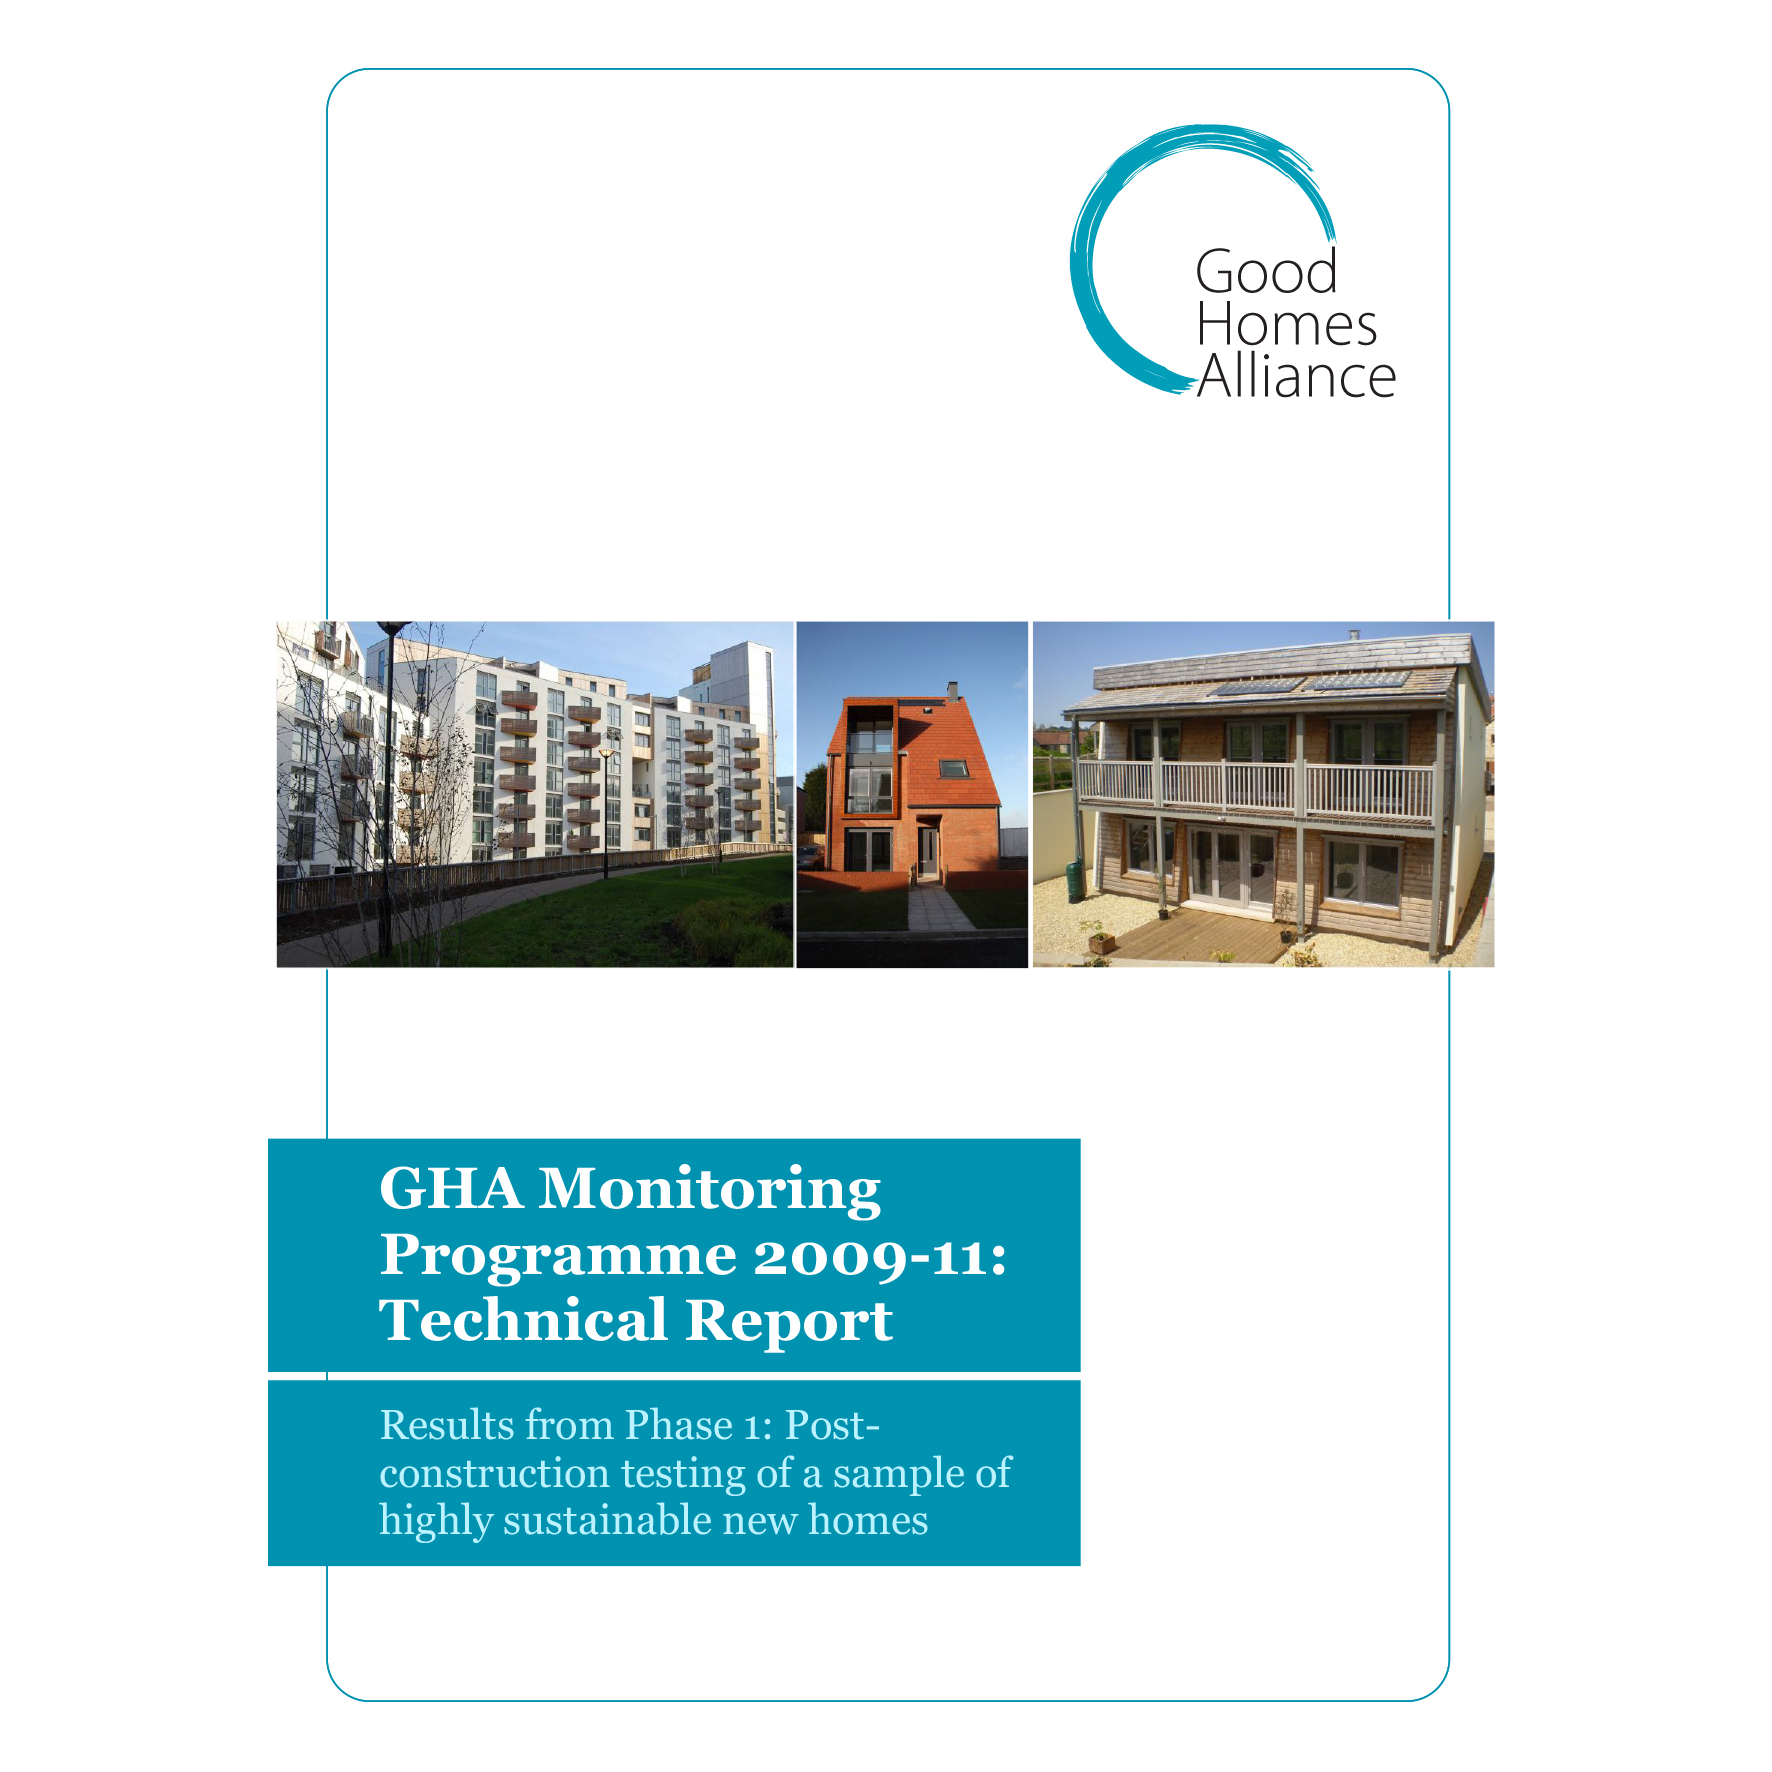 Phase 1 Summary and Recommendations - GHA Monitoring Programme funded by DCLG, EST, NHBC Foundation